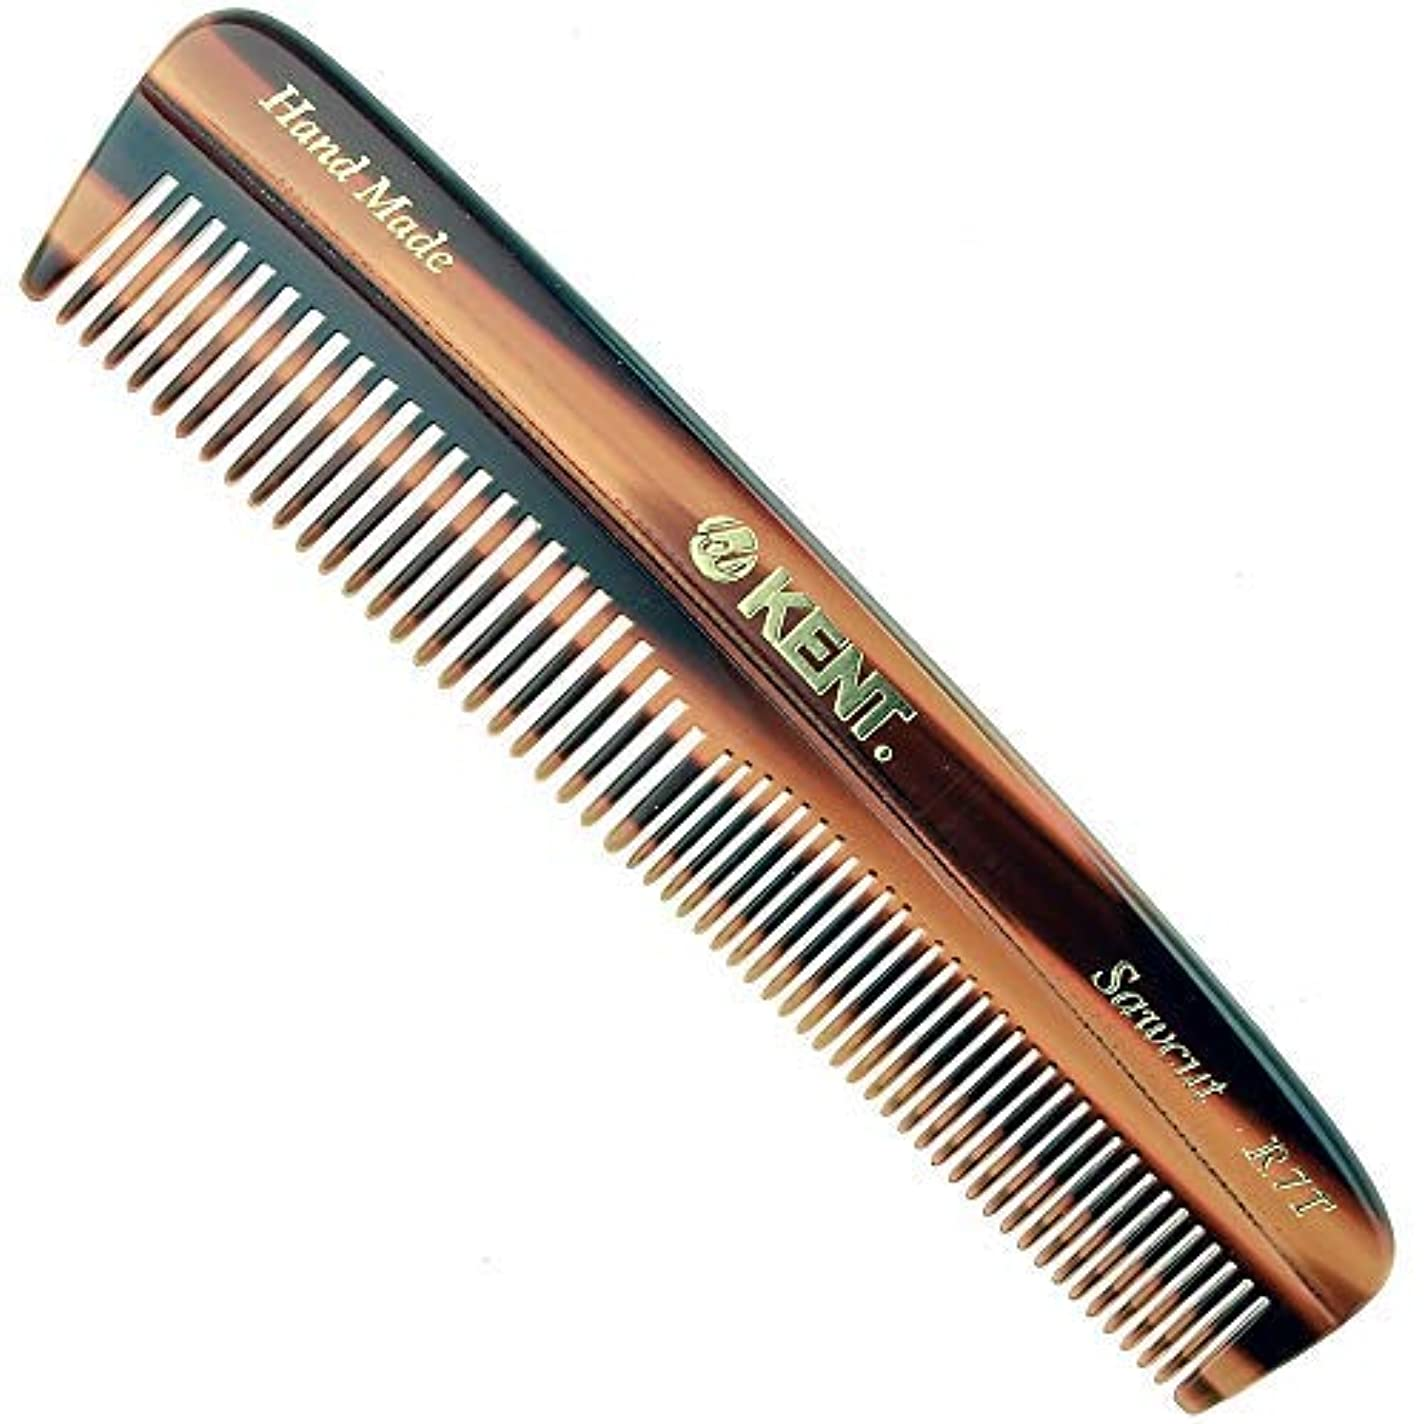 Kent R7T - Men's/Women's Coarse and Fine Toothed Small Travel Pocket Comb 130mm/5.63